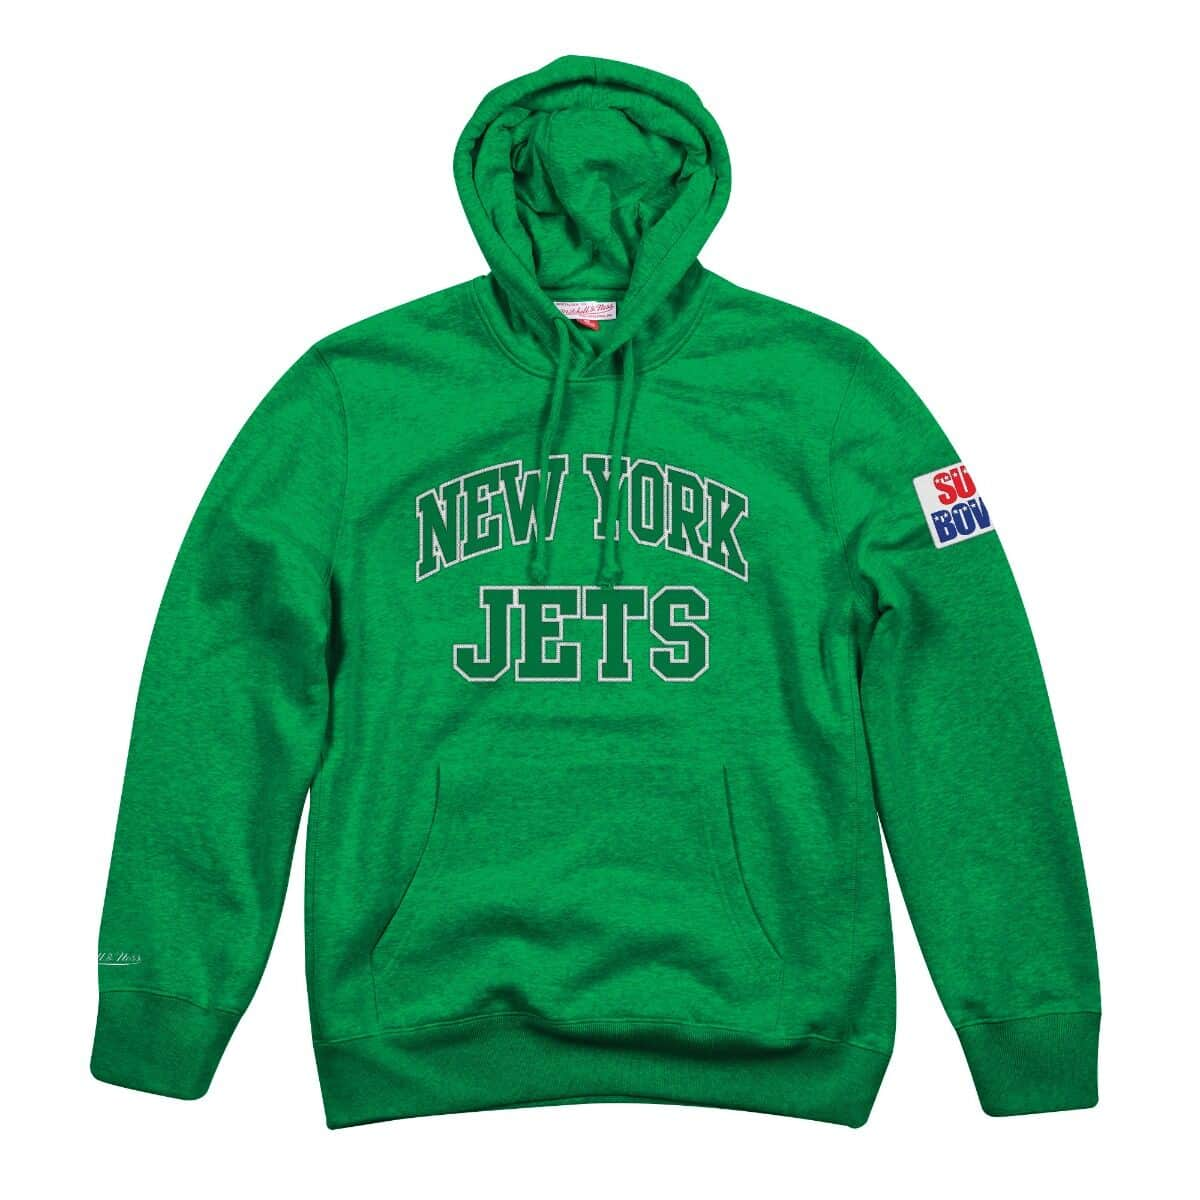 Playoff Win Hoody New York Jets